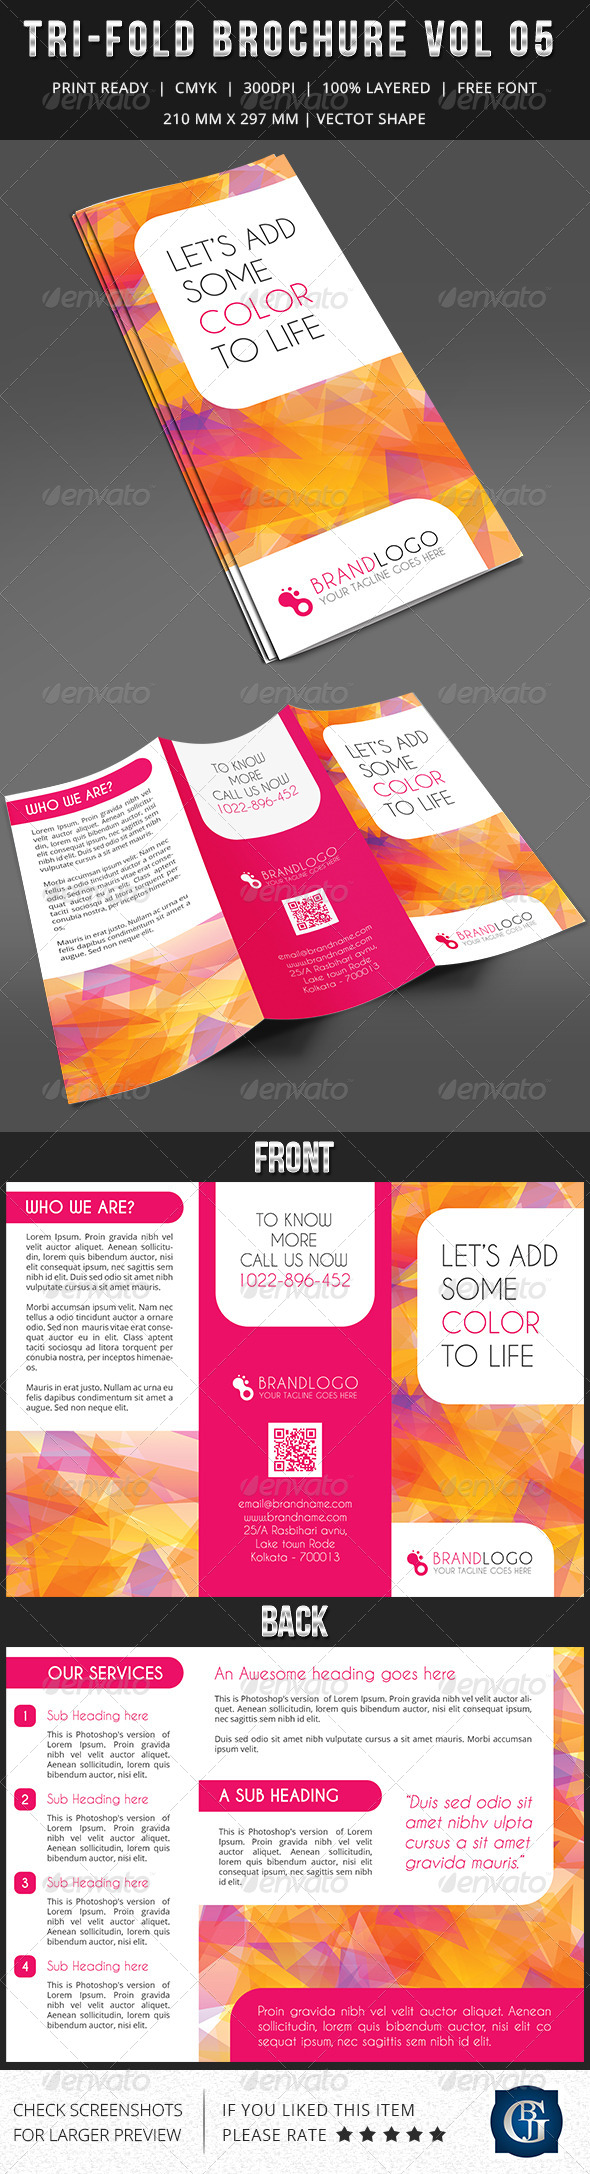 Corporate Multipurpose Trifold Brochure Vol 5 - Informational Brochures